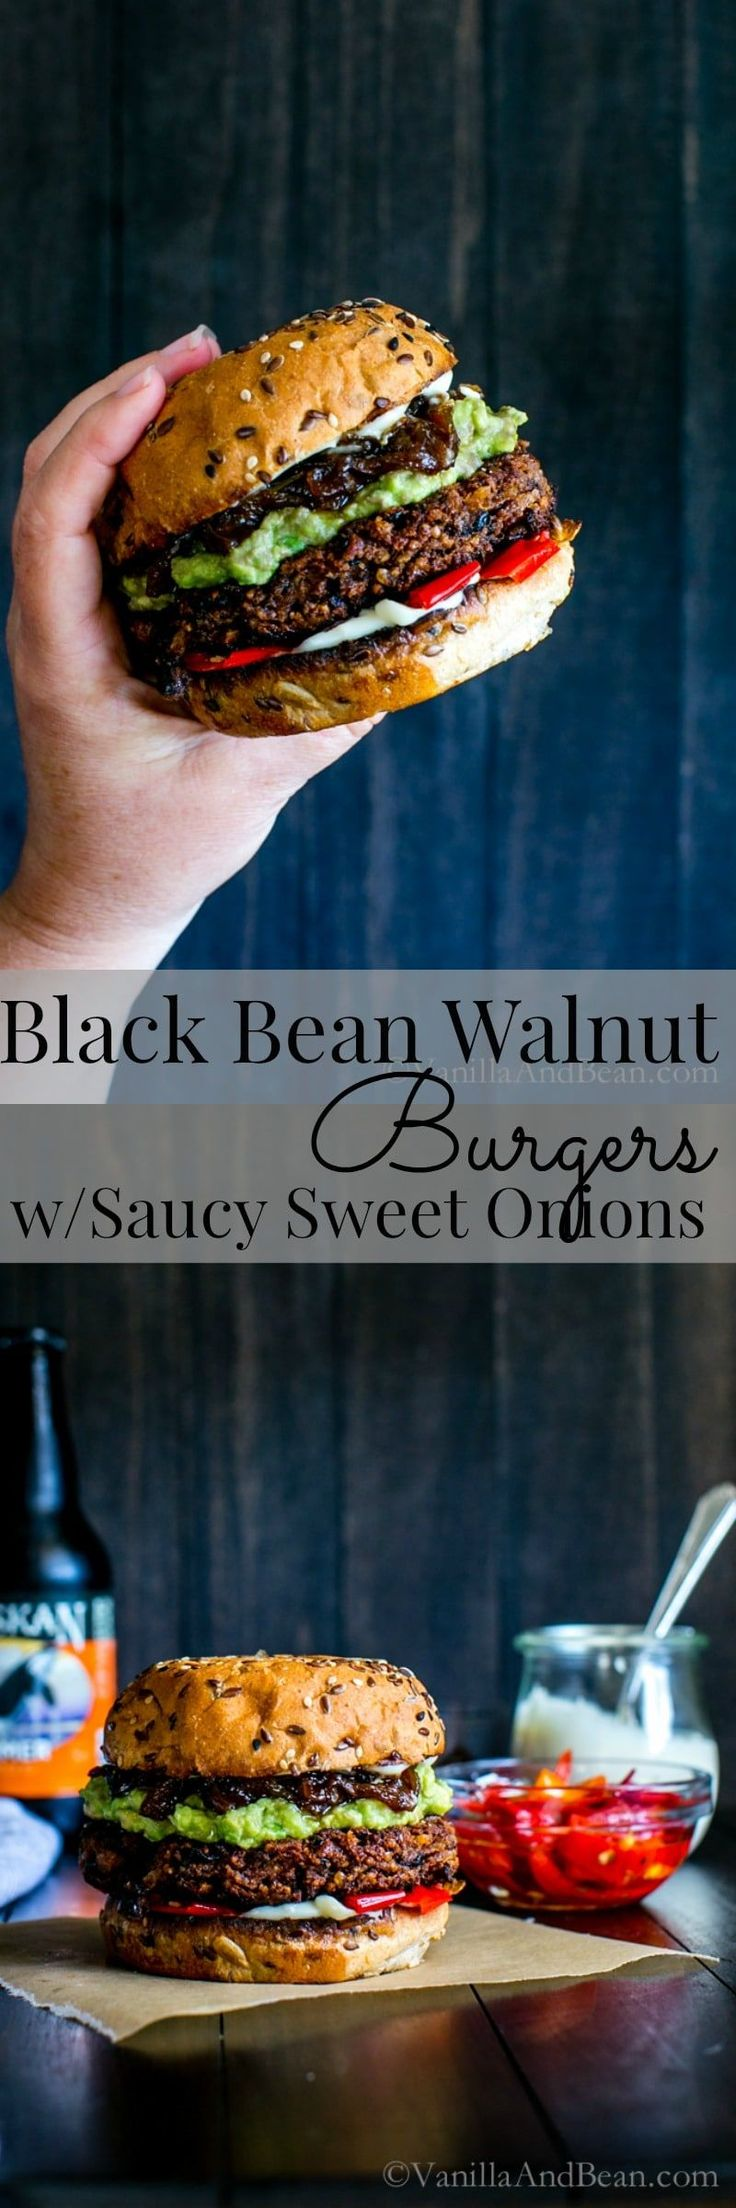 Black Bean Walnut Burgers with Saucy Sweet Onions